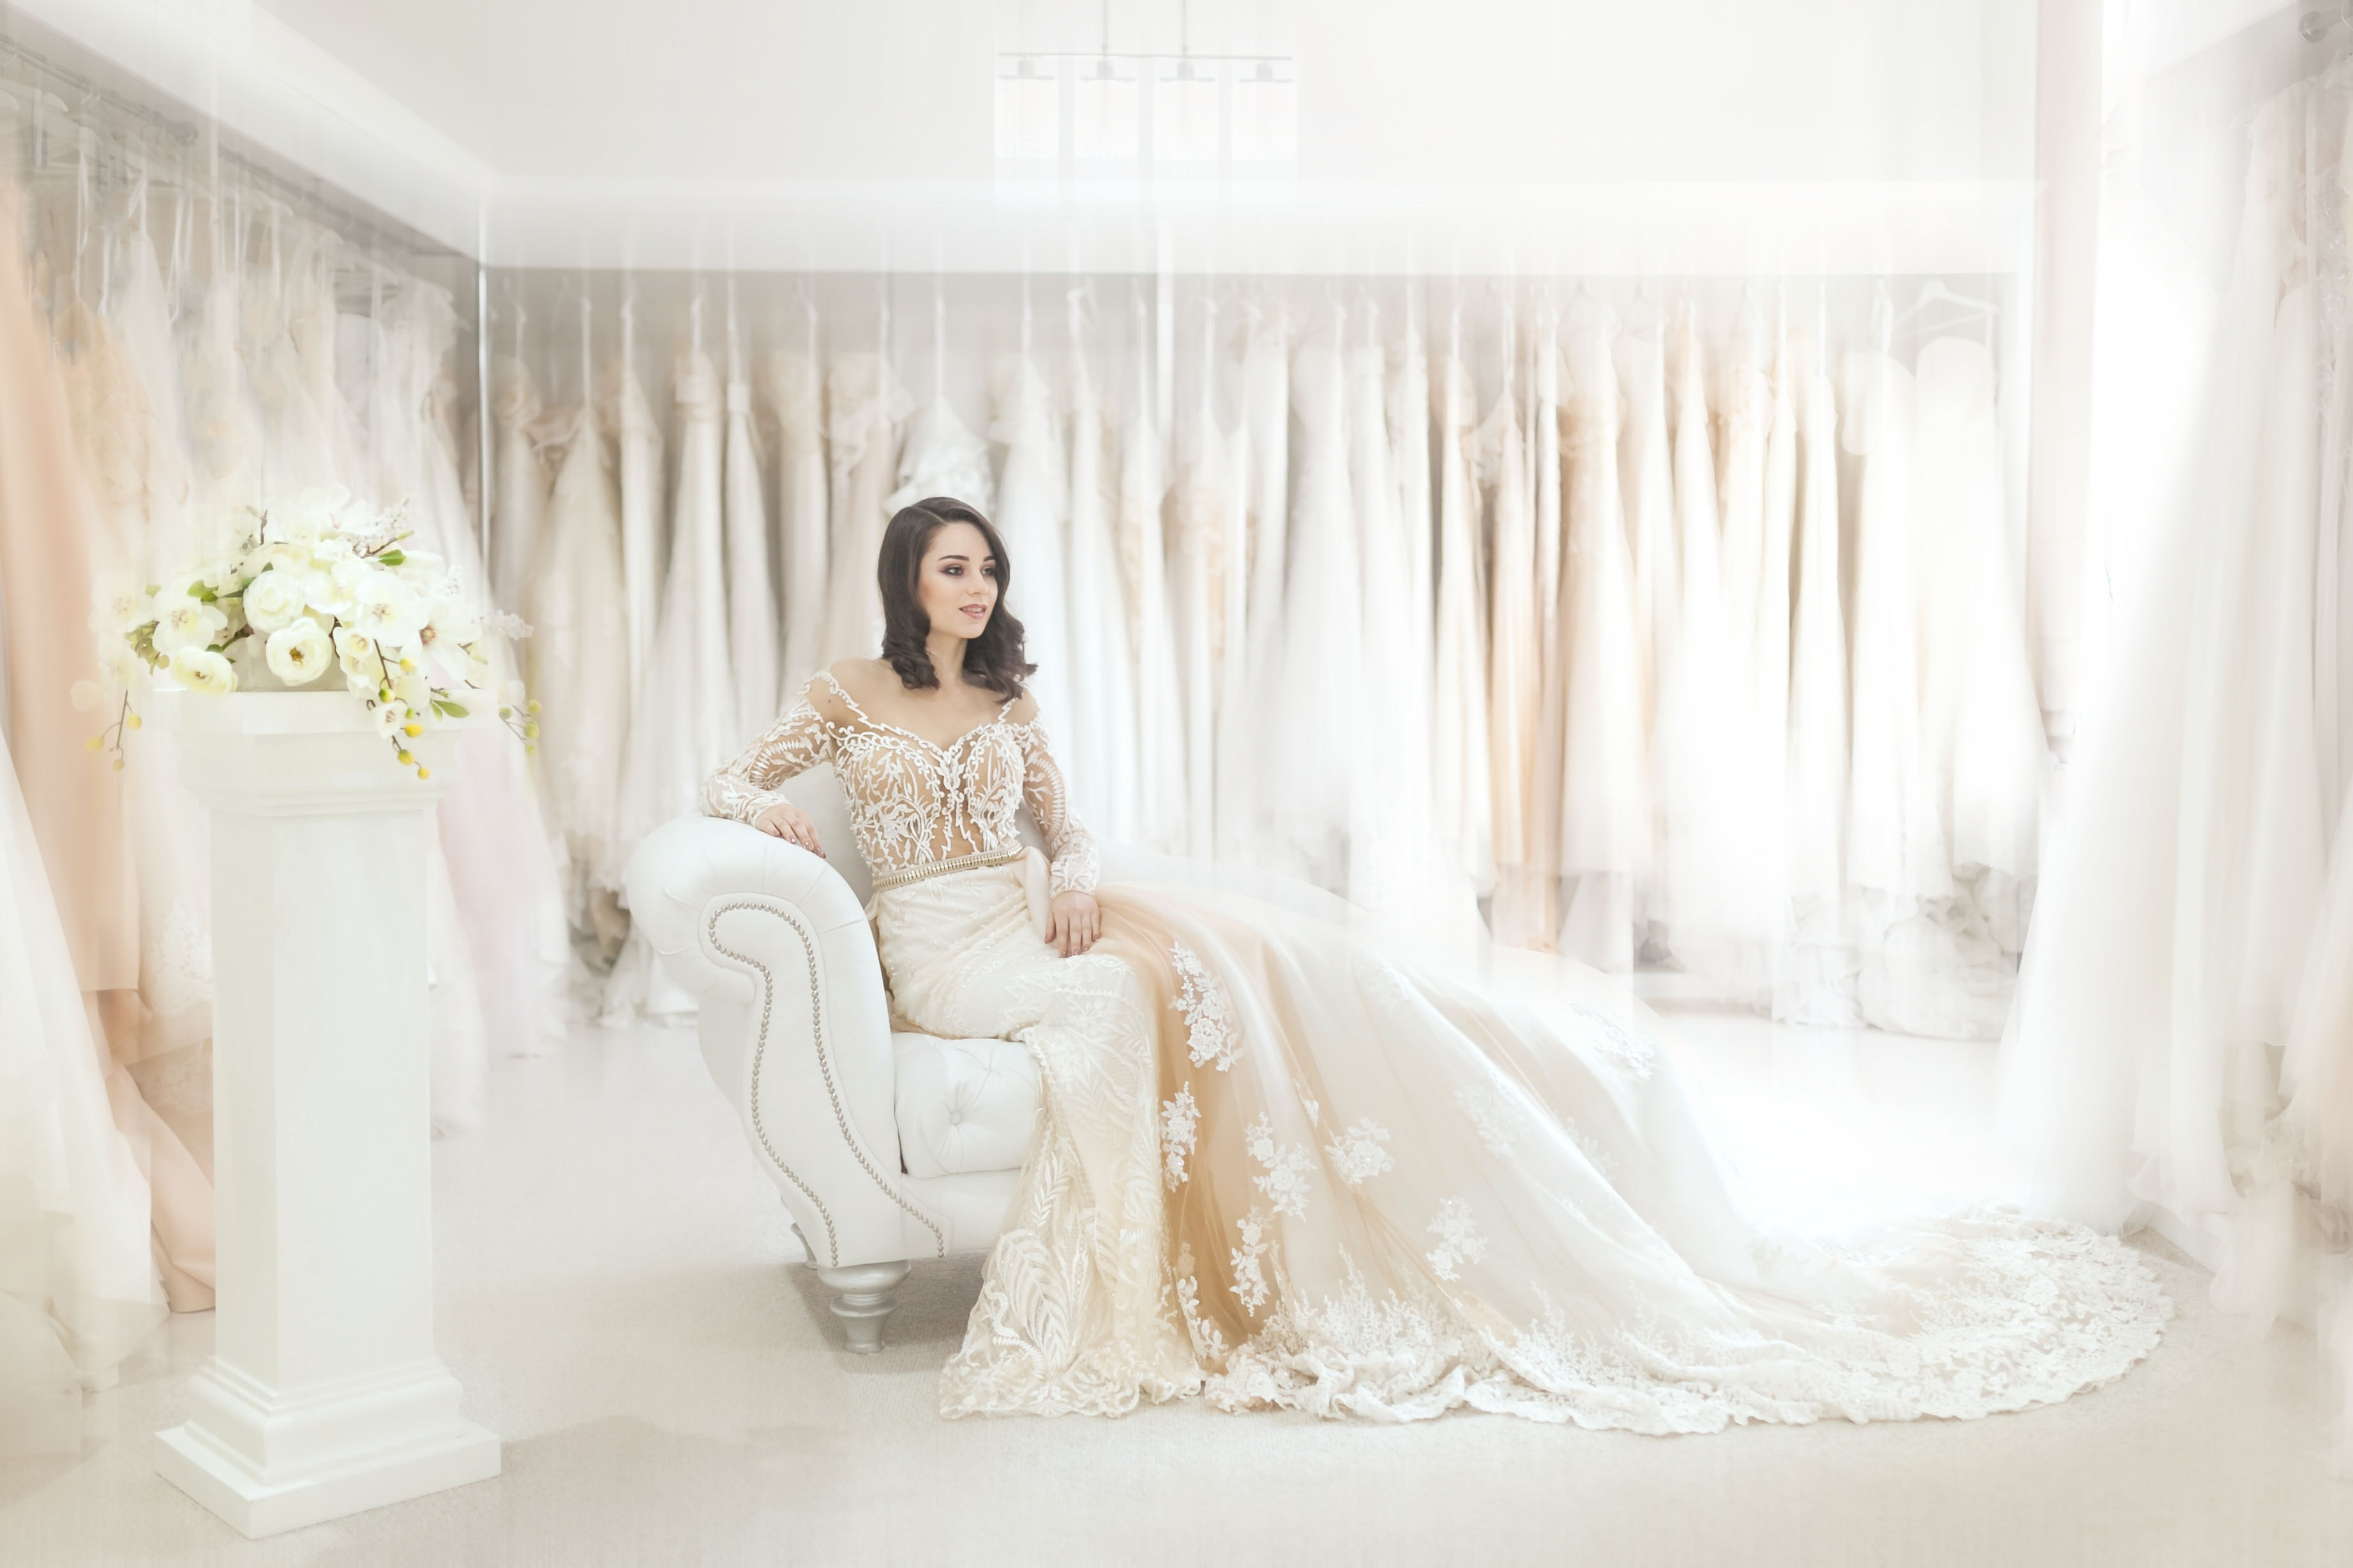 Bridesmaids: Create the perfect wedding dress shopping experience